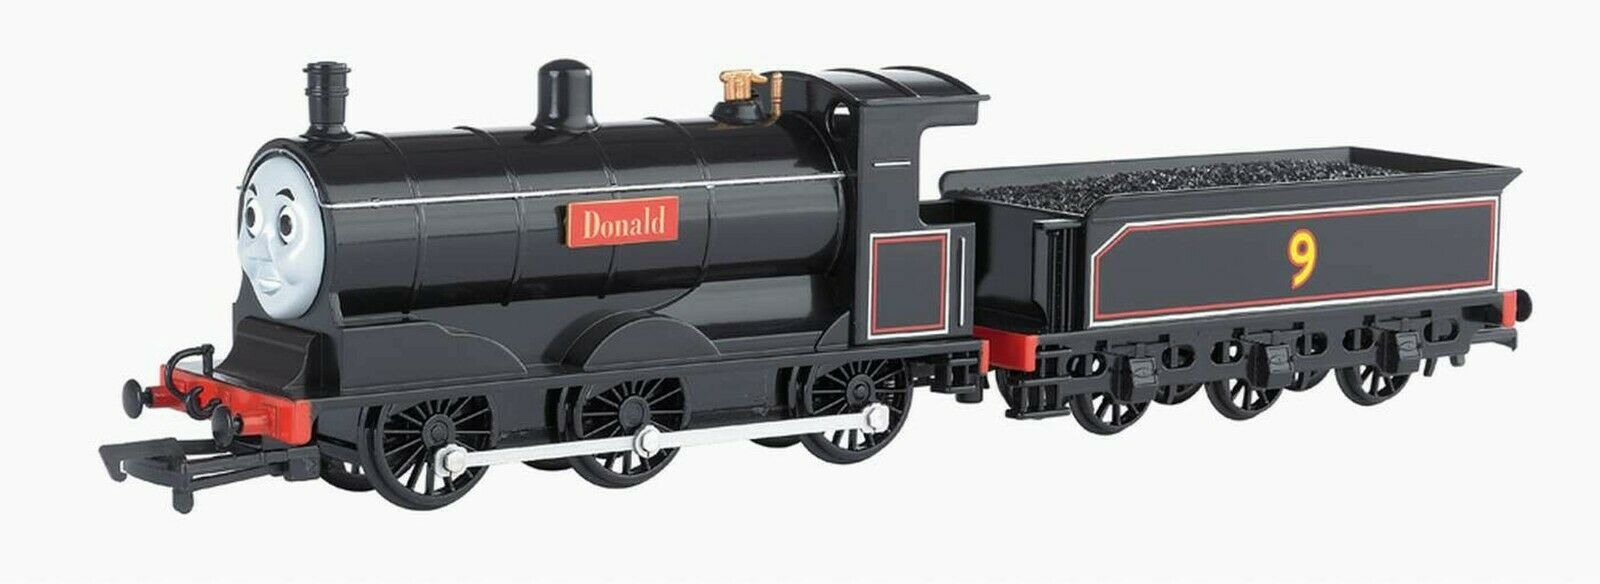 BACHuomoN HO SCALE ELECTRIC THOMAS & FRIENDS DONALD LOCOMOTIVE wMoving Eyes